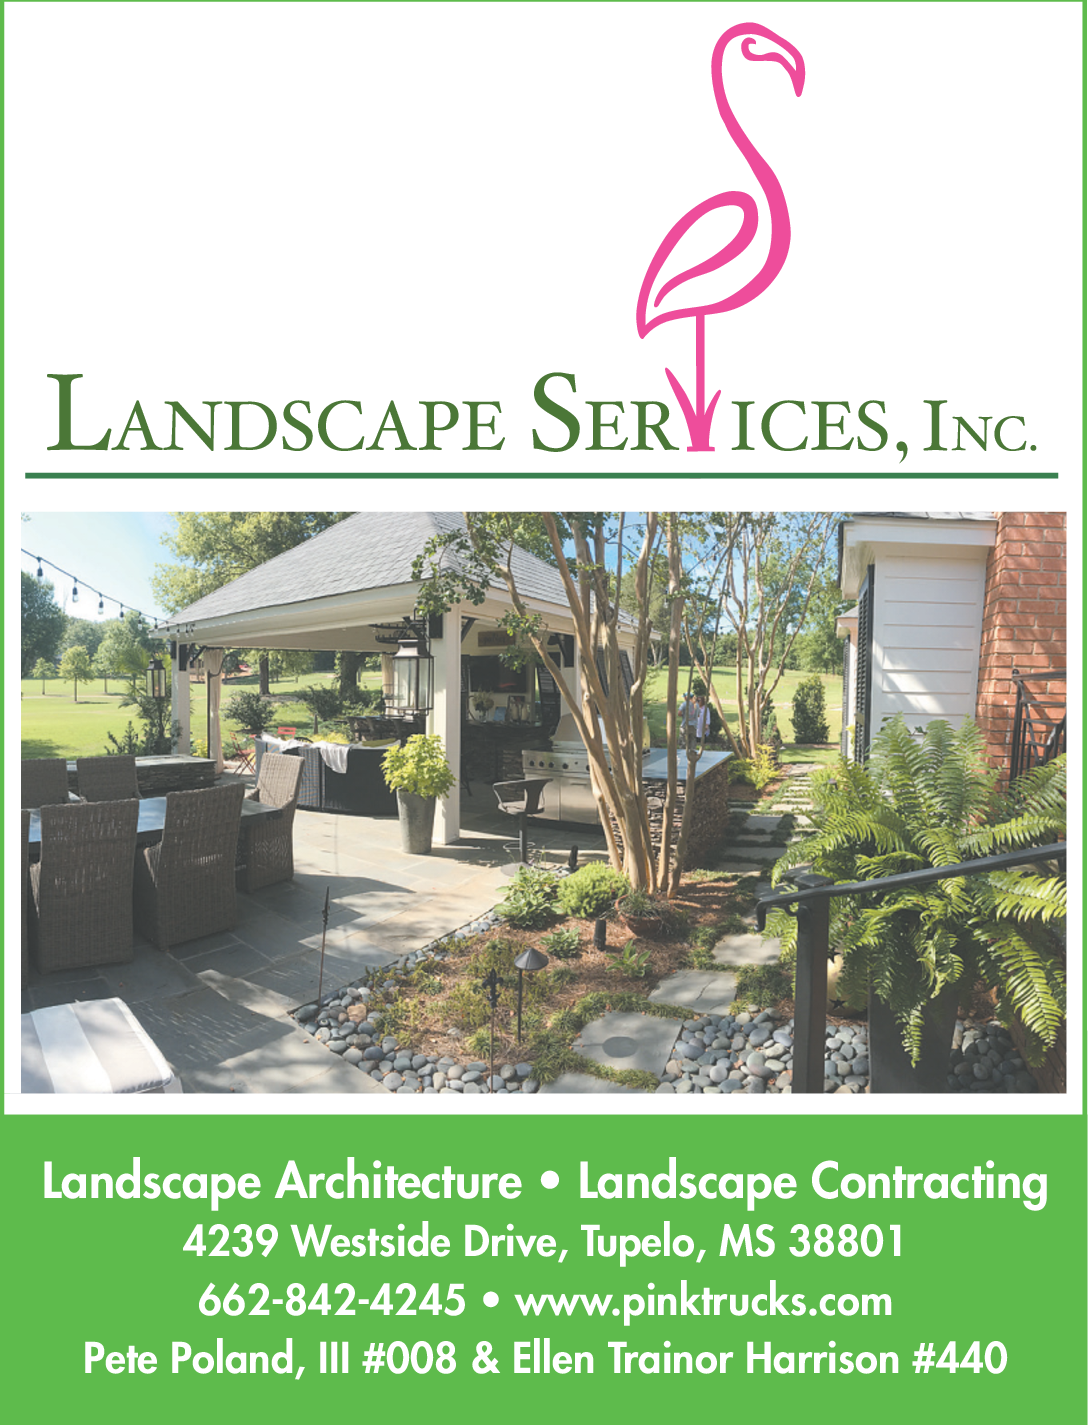 Architecture and Contracting of Landscape in Tupelo, MS, Landscape &  Sprinklers - LANDSCAPE SERVICES,INC - Architecture And Contracting Of Landscape In Tupelo, MS, Landscape